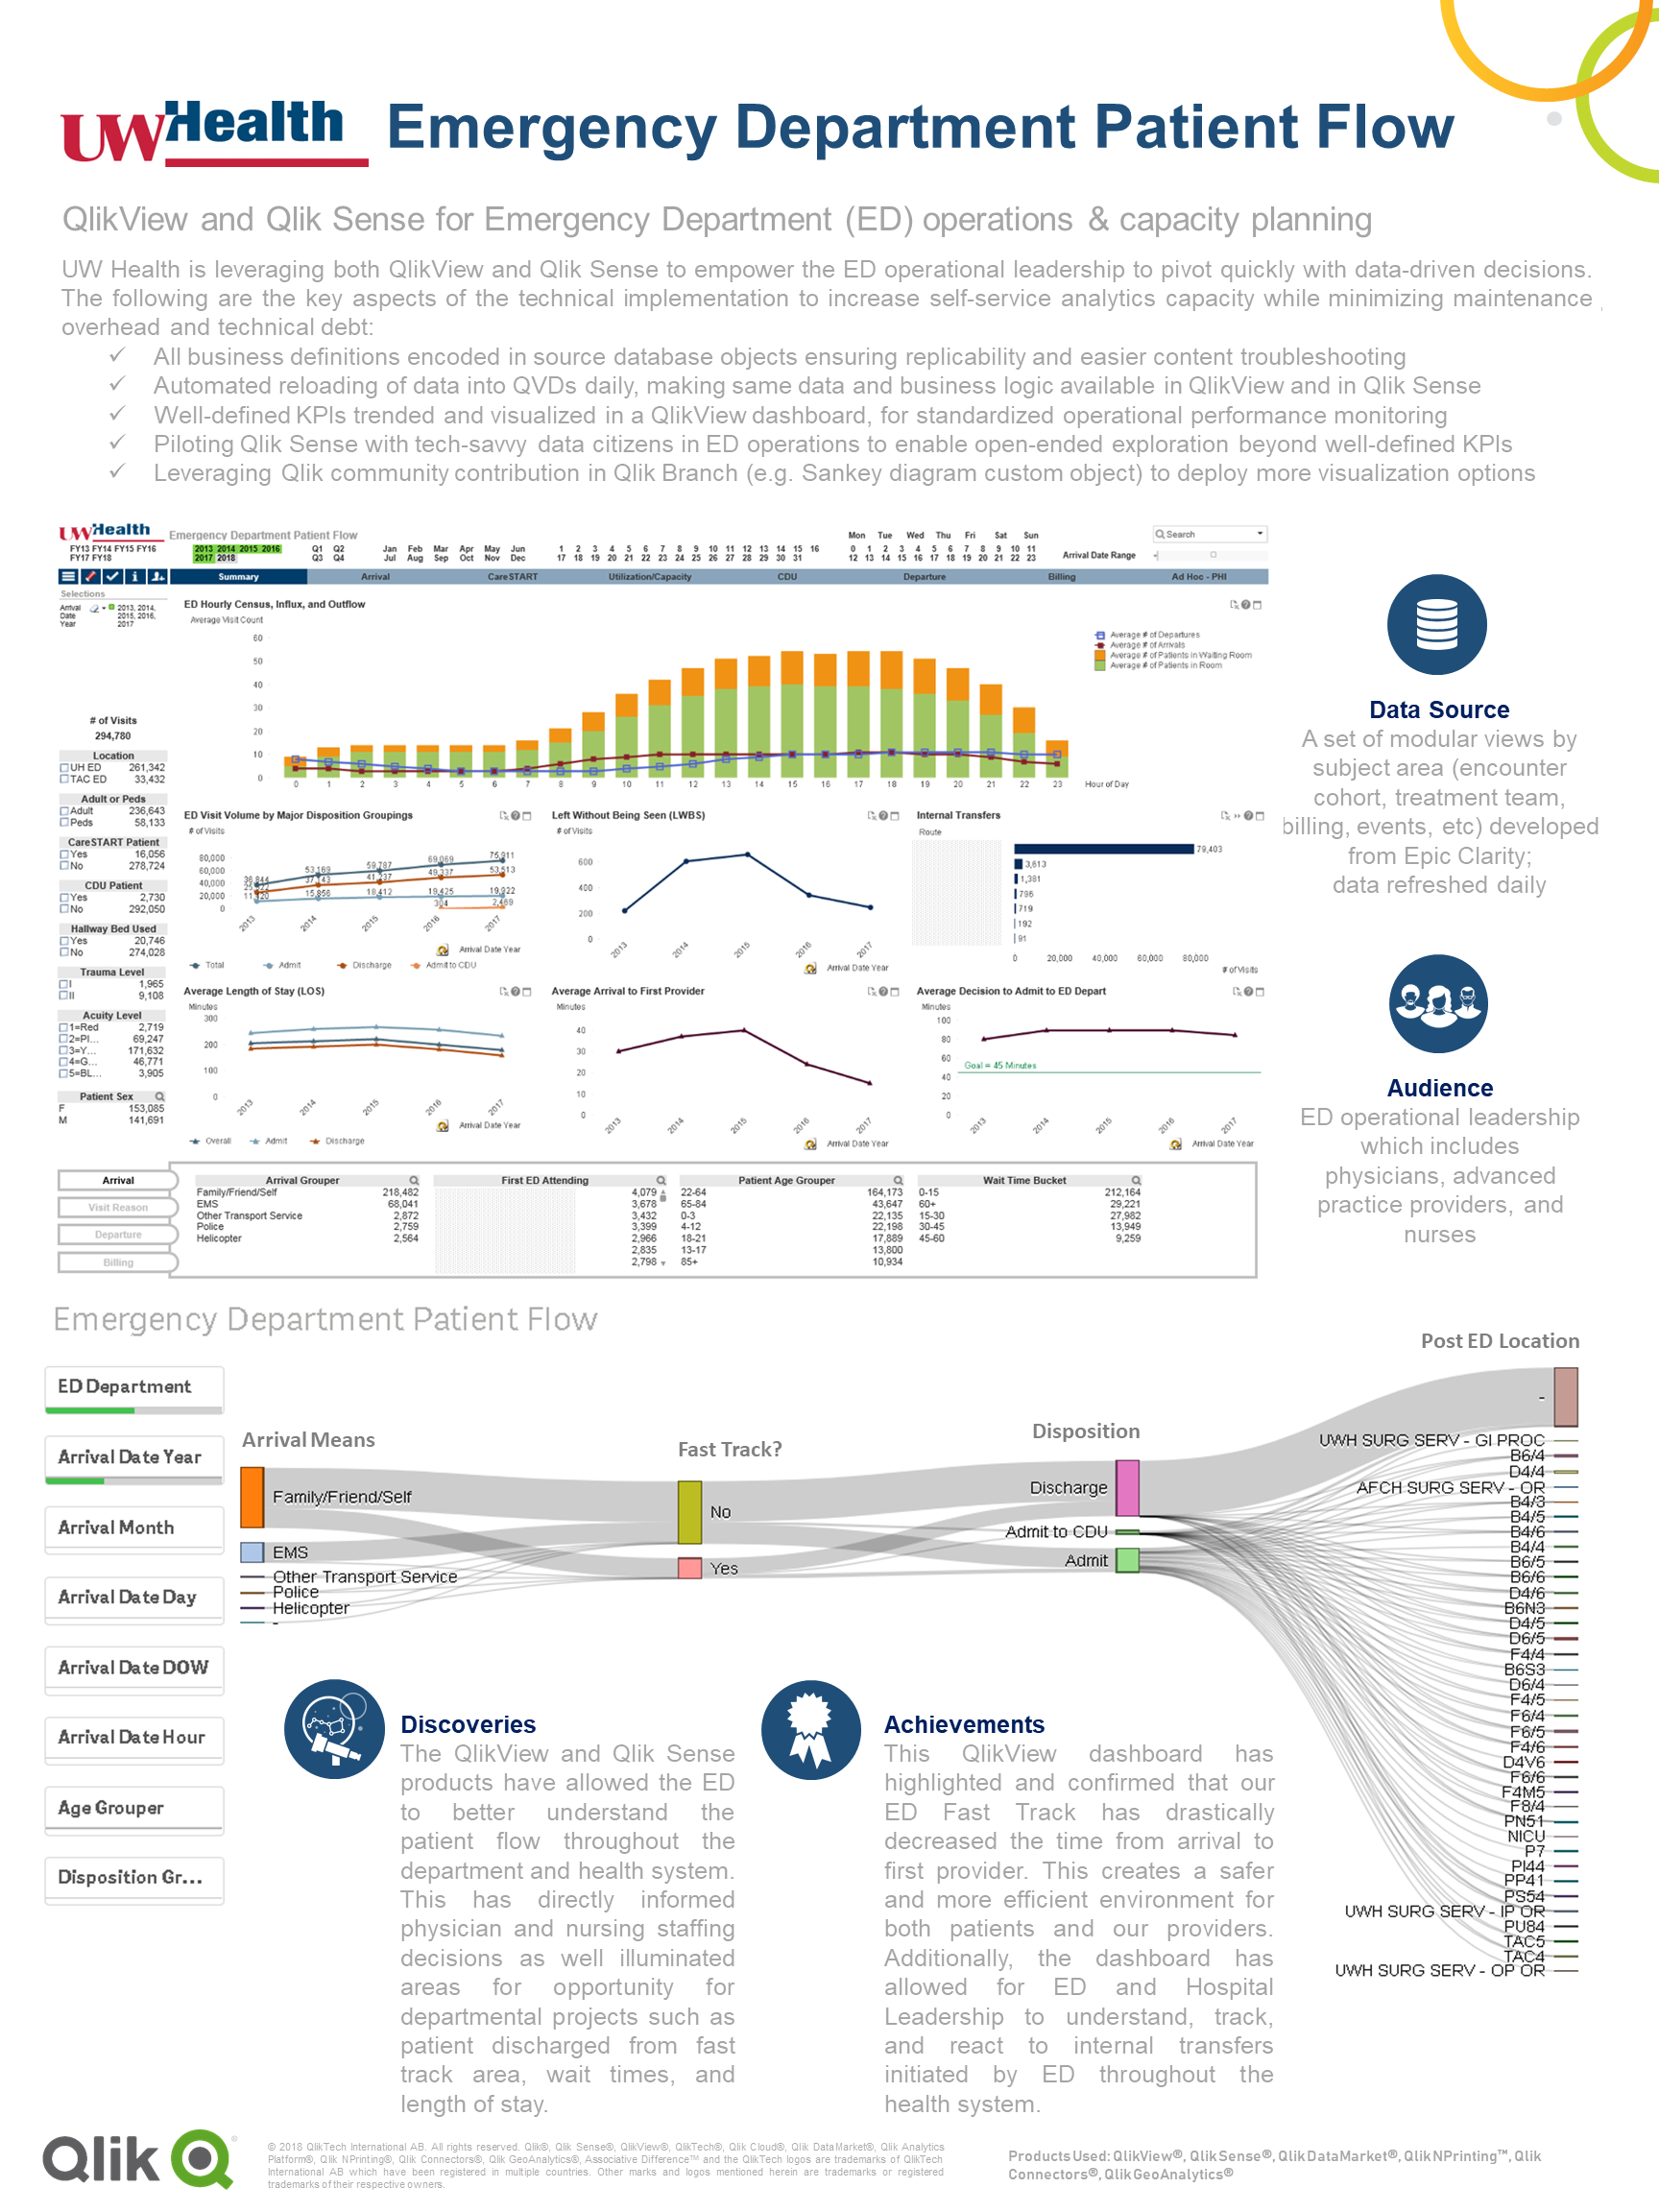 7 Qonnections Healthcare Poster - UW Health - ED Patient Flow.png